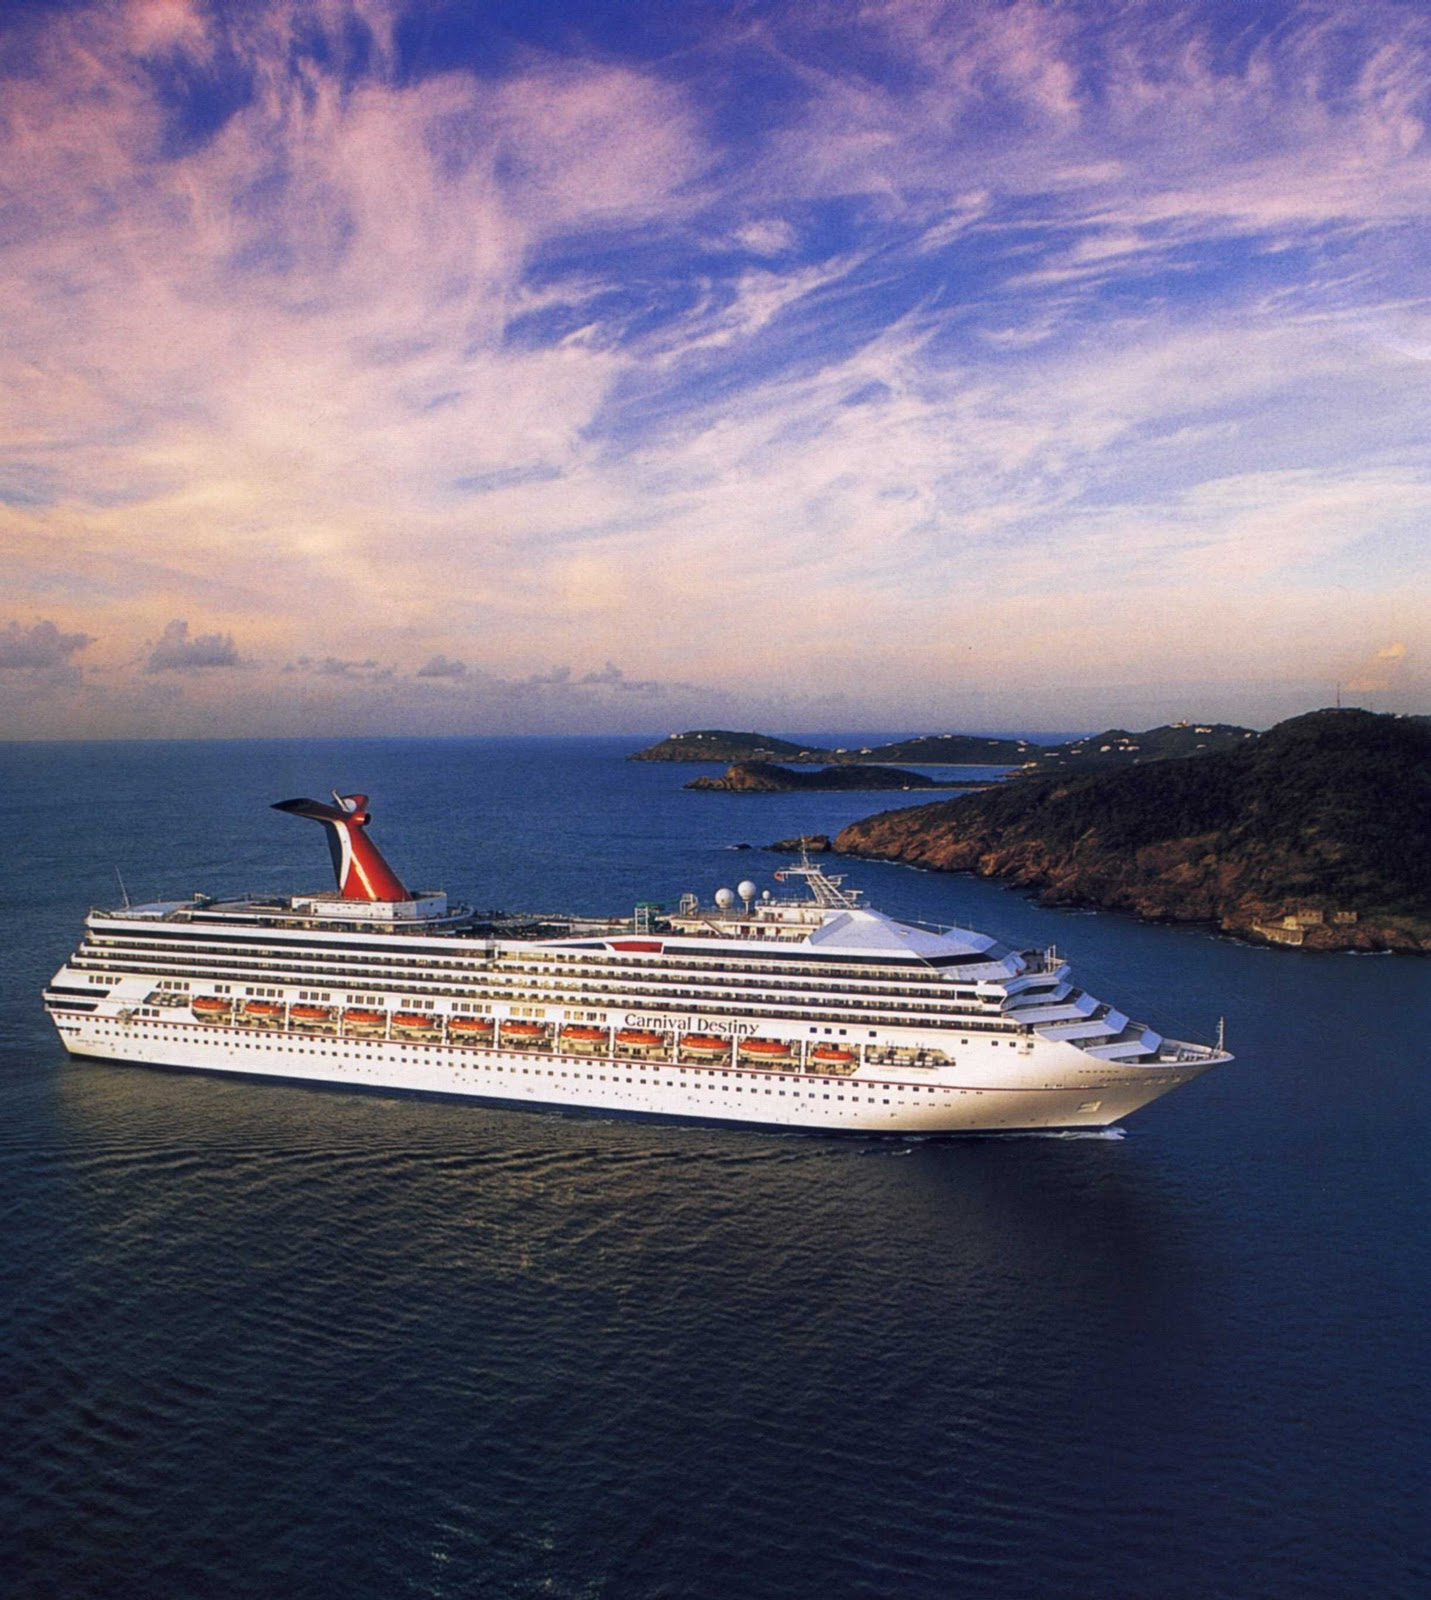 Image Gallary 9: Most Amazing Cruise Ship Pictures